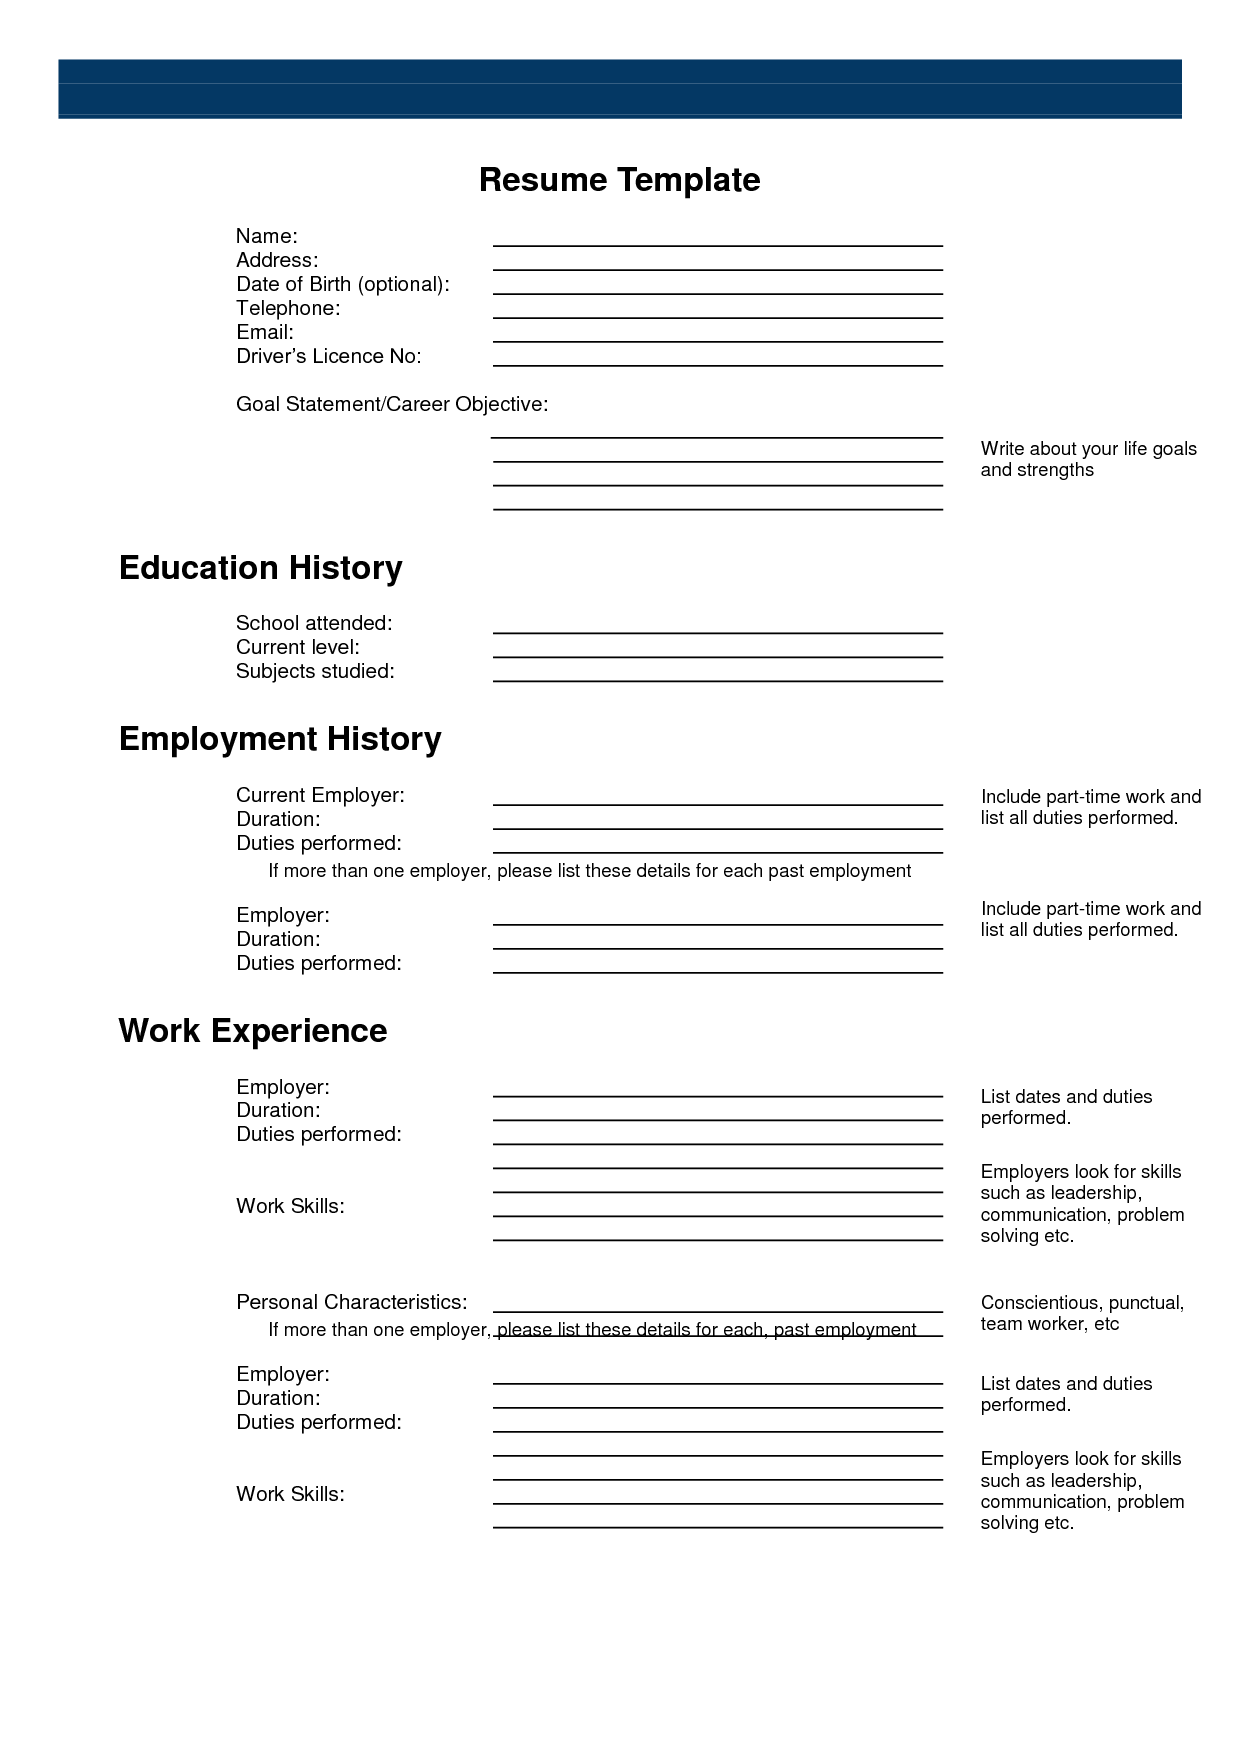 Resume Employment History Free Printable Sample Resume Templates  Httpwwwresumecareer